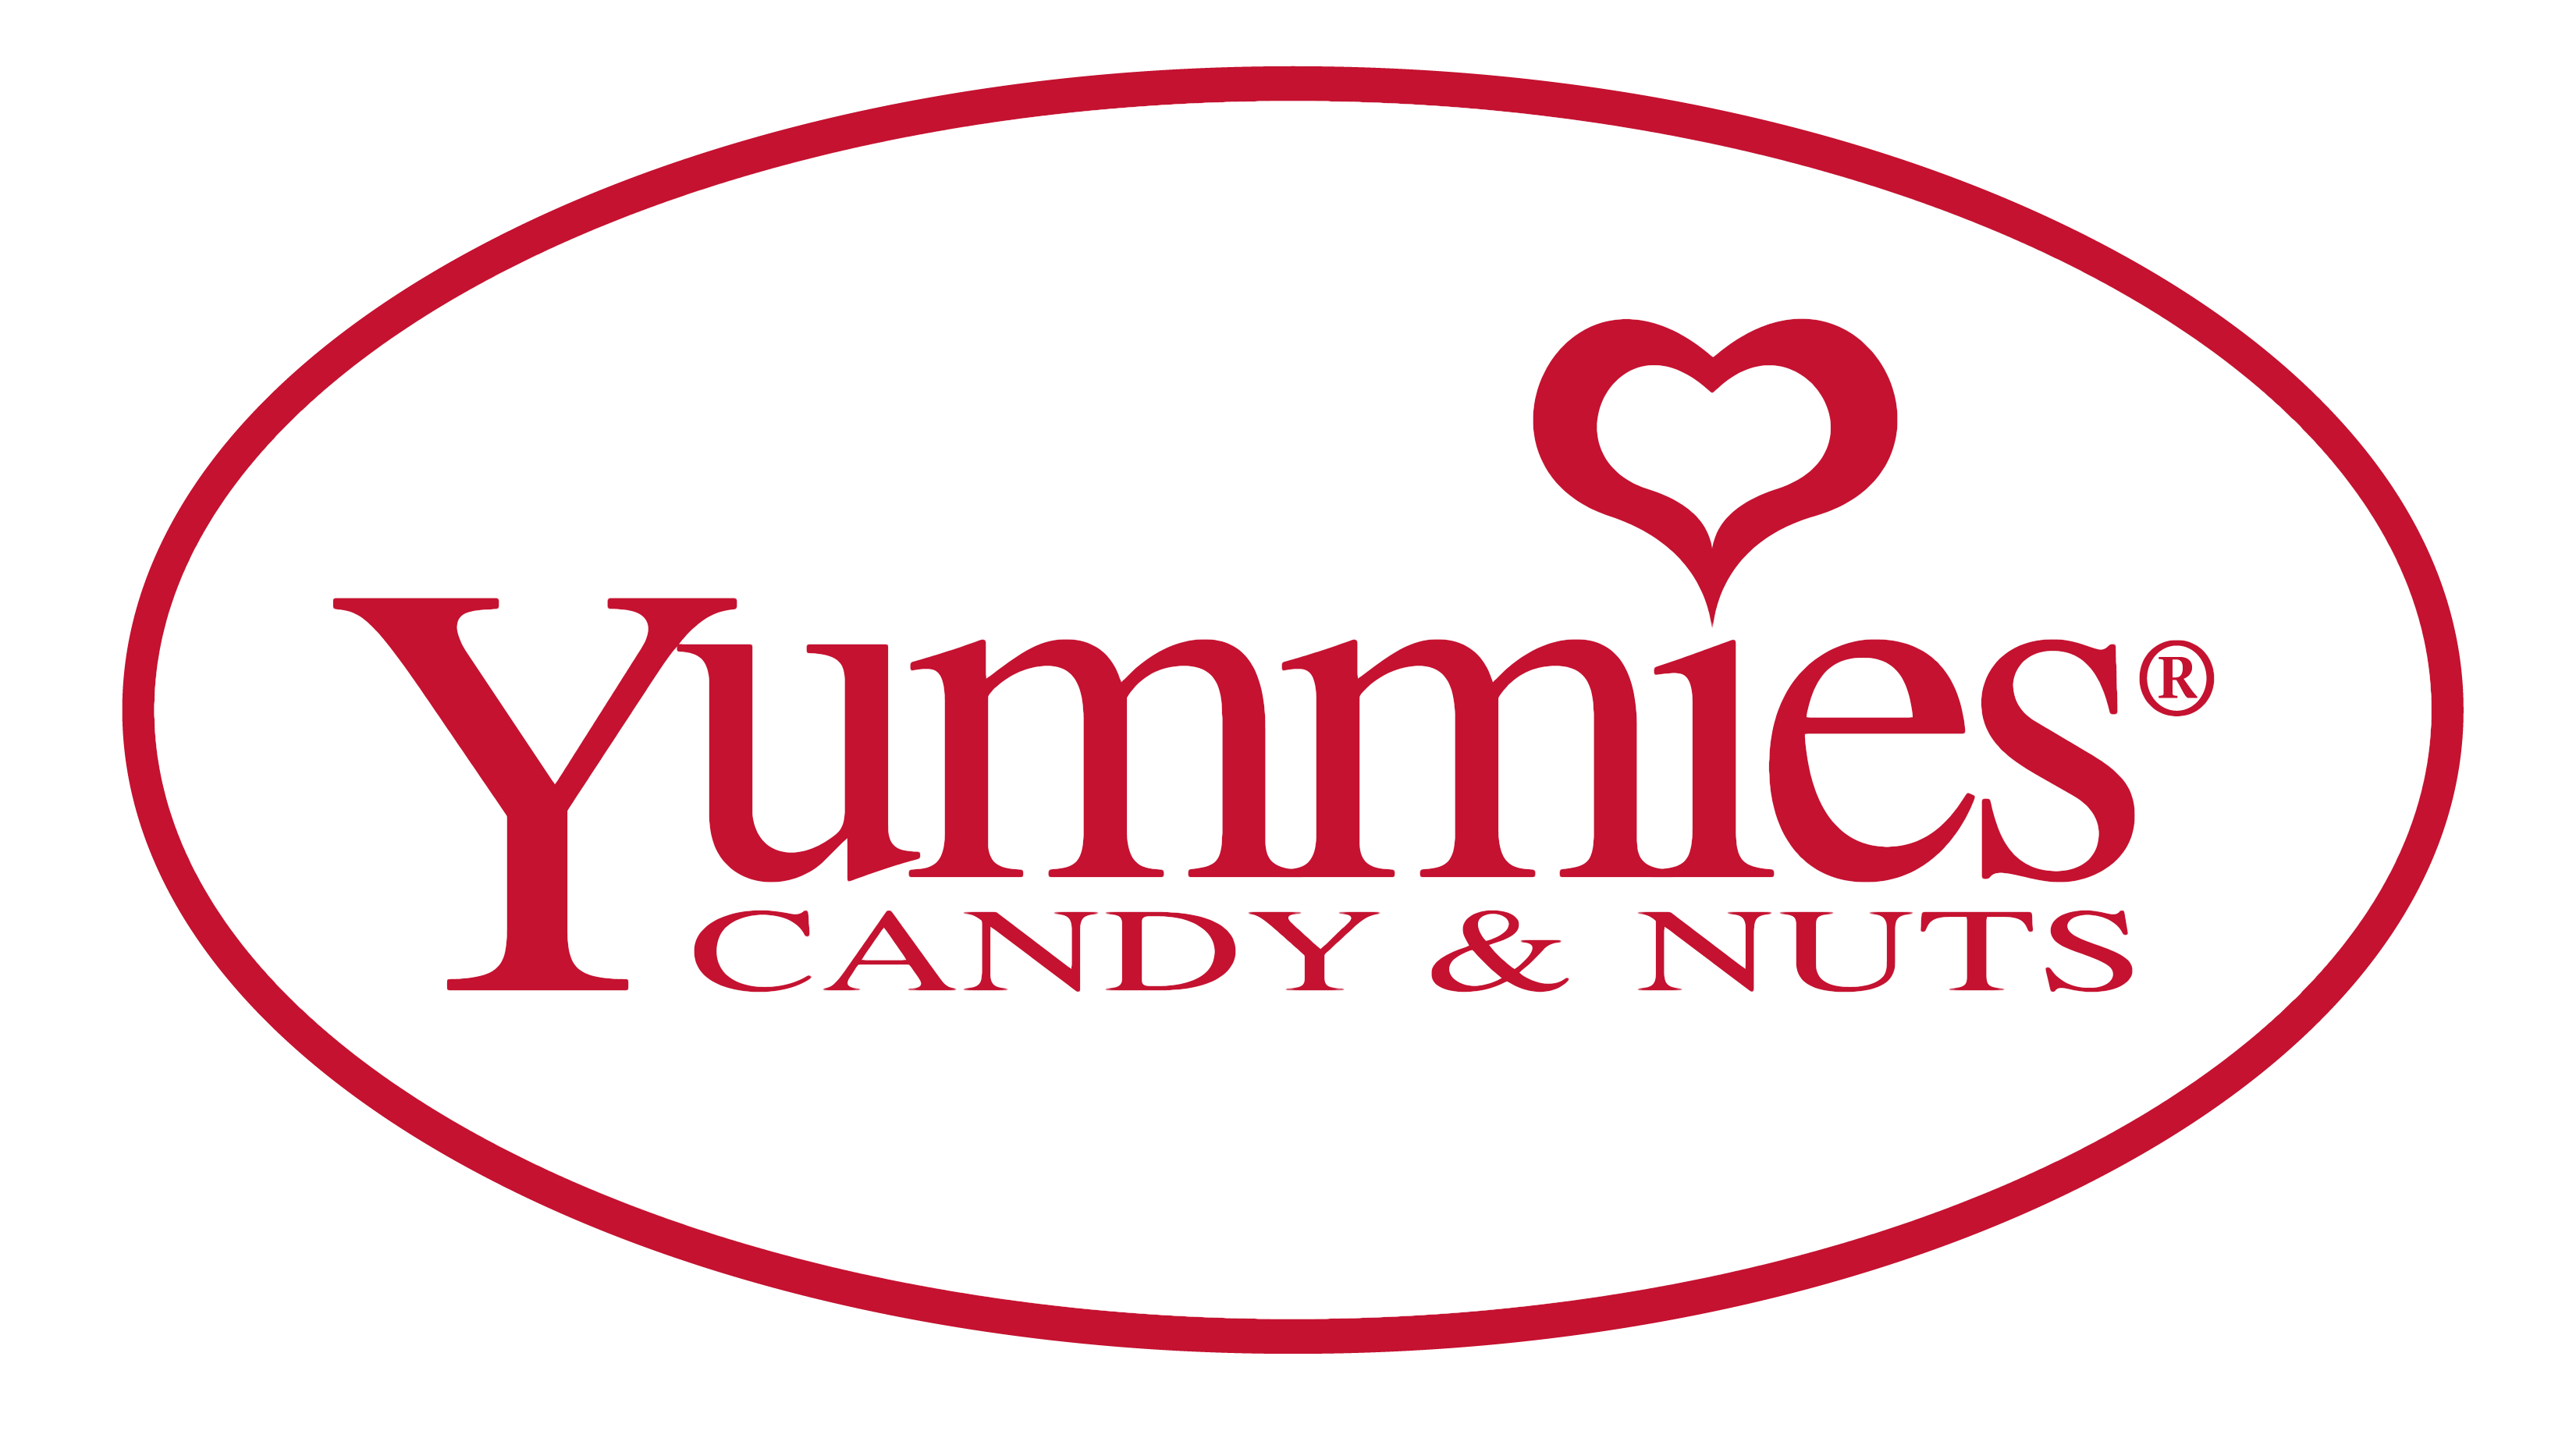 Yummies Candy & Nuts